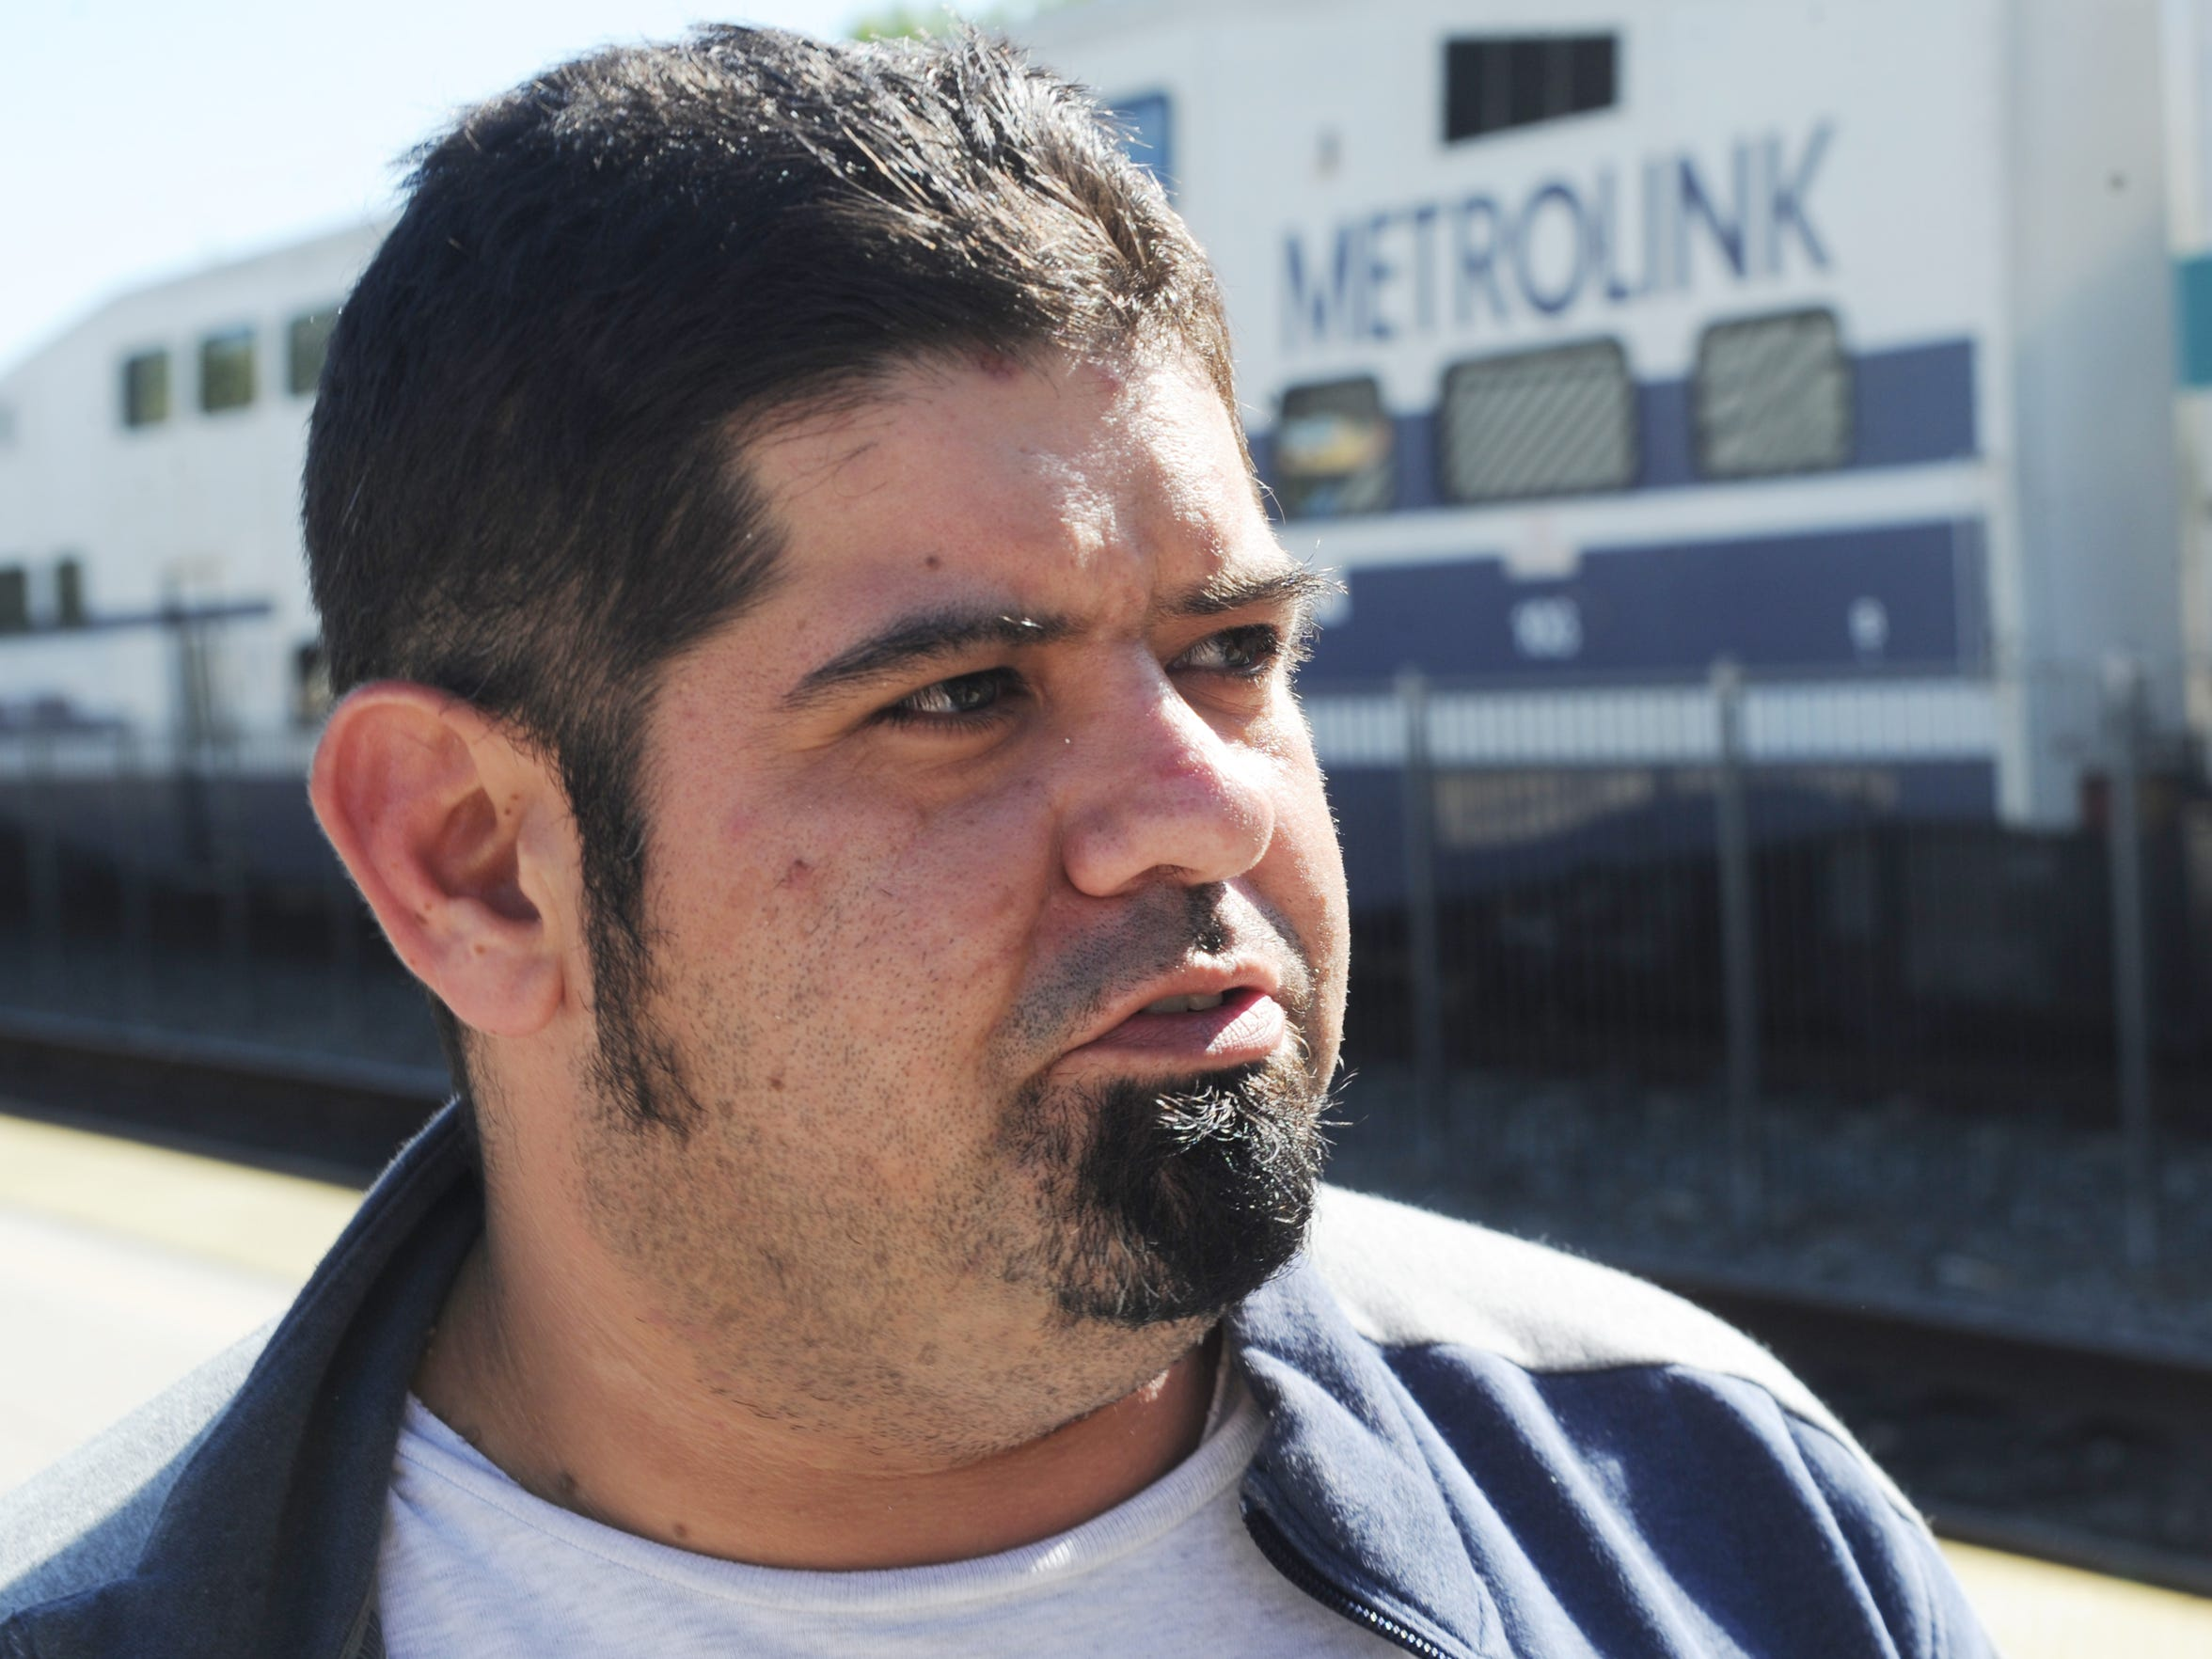 Carlos Romero, of Moorpark, waits to take a Metrolink train from Chatsworth to Simi Valley. Ten years on Sept. 12, 2008, at  4:22 p.m. a Metrolink train headed to Ventura County collided head-on with a Union Pacific freight train near Chatsworth killing 25 people.